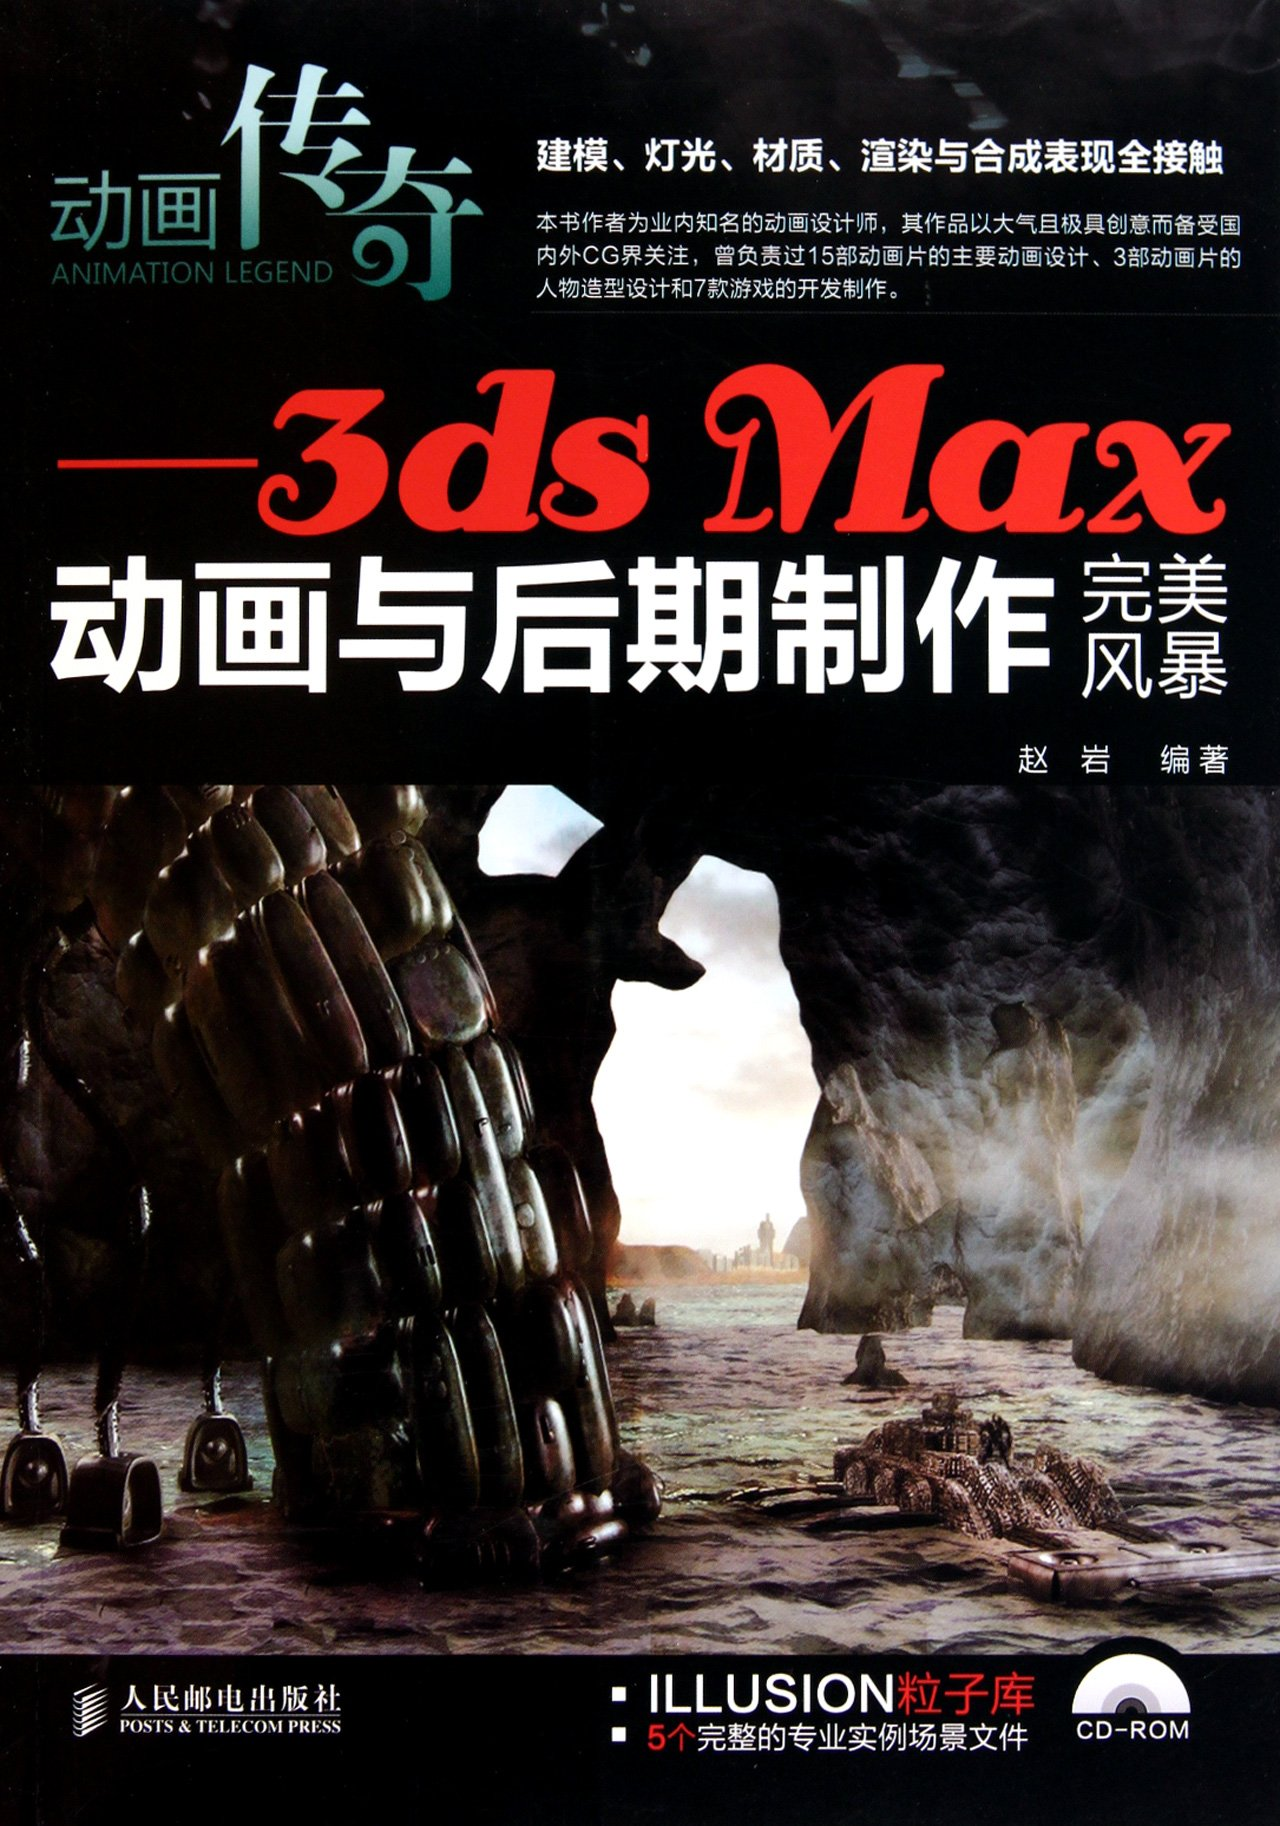 Animation Legend --3ds Max Animation And Post-production of The Perfect Storm (1C ) (Color Copy) (Chinese Edition) pdf